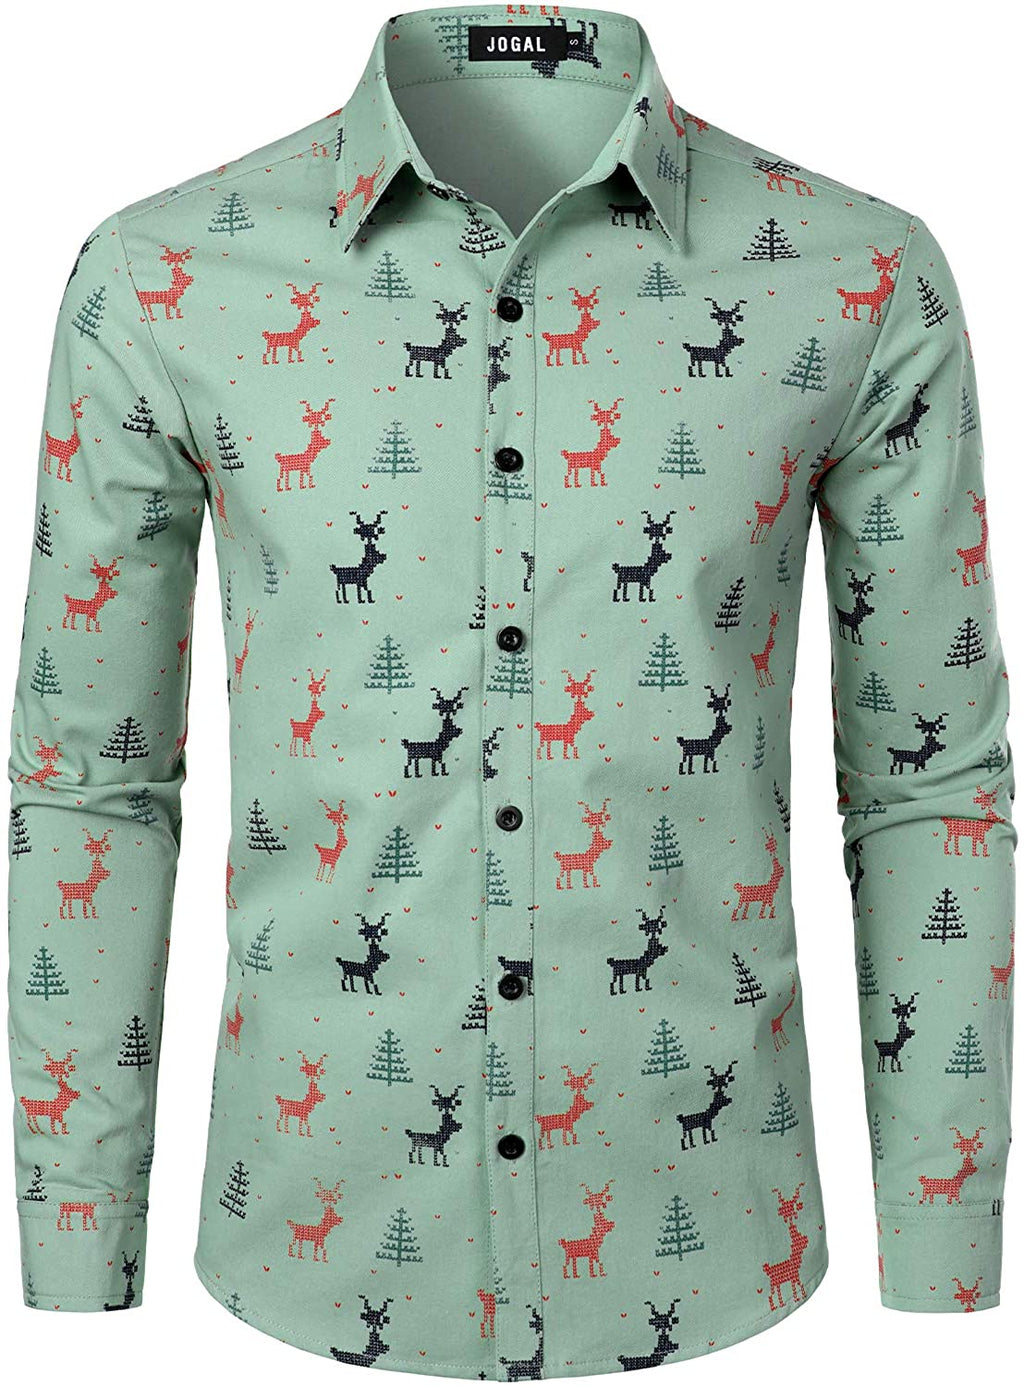 JOGAL Men's Christmas Santa Claus Party Long Sleeve Button Down Shirts